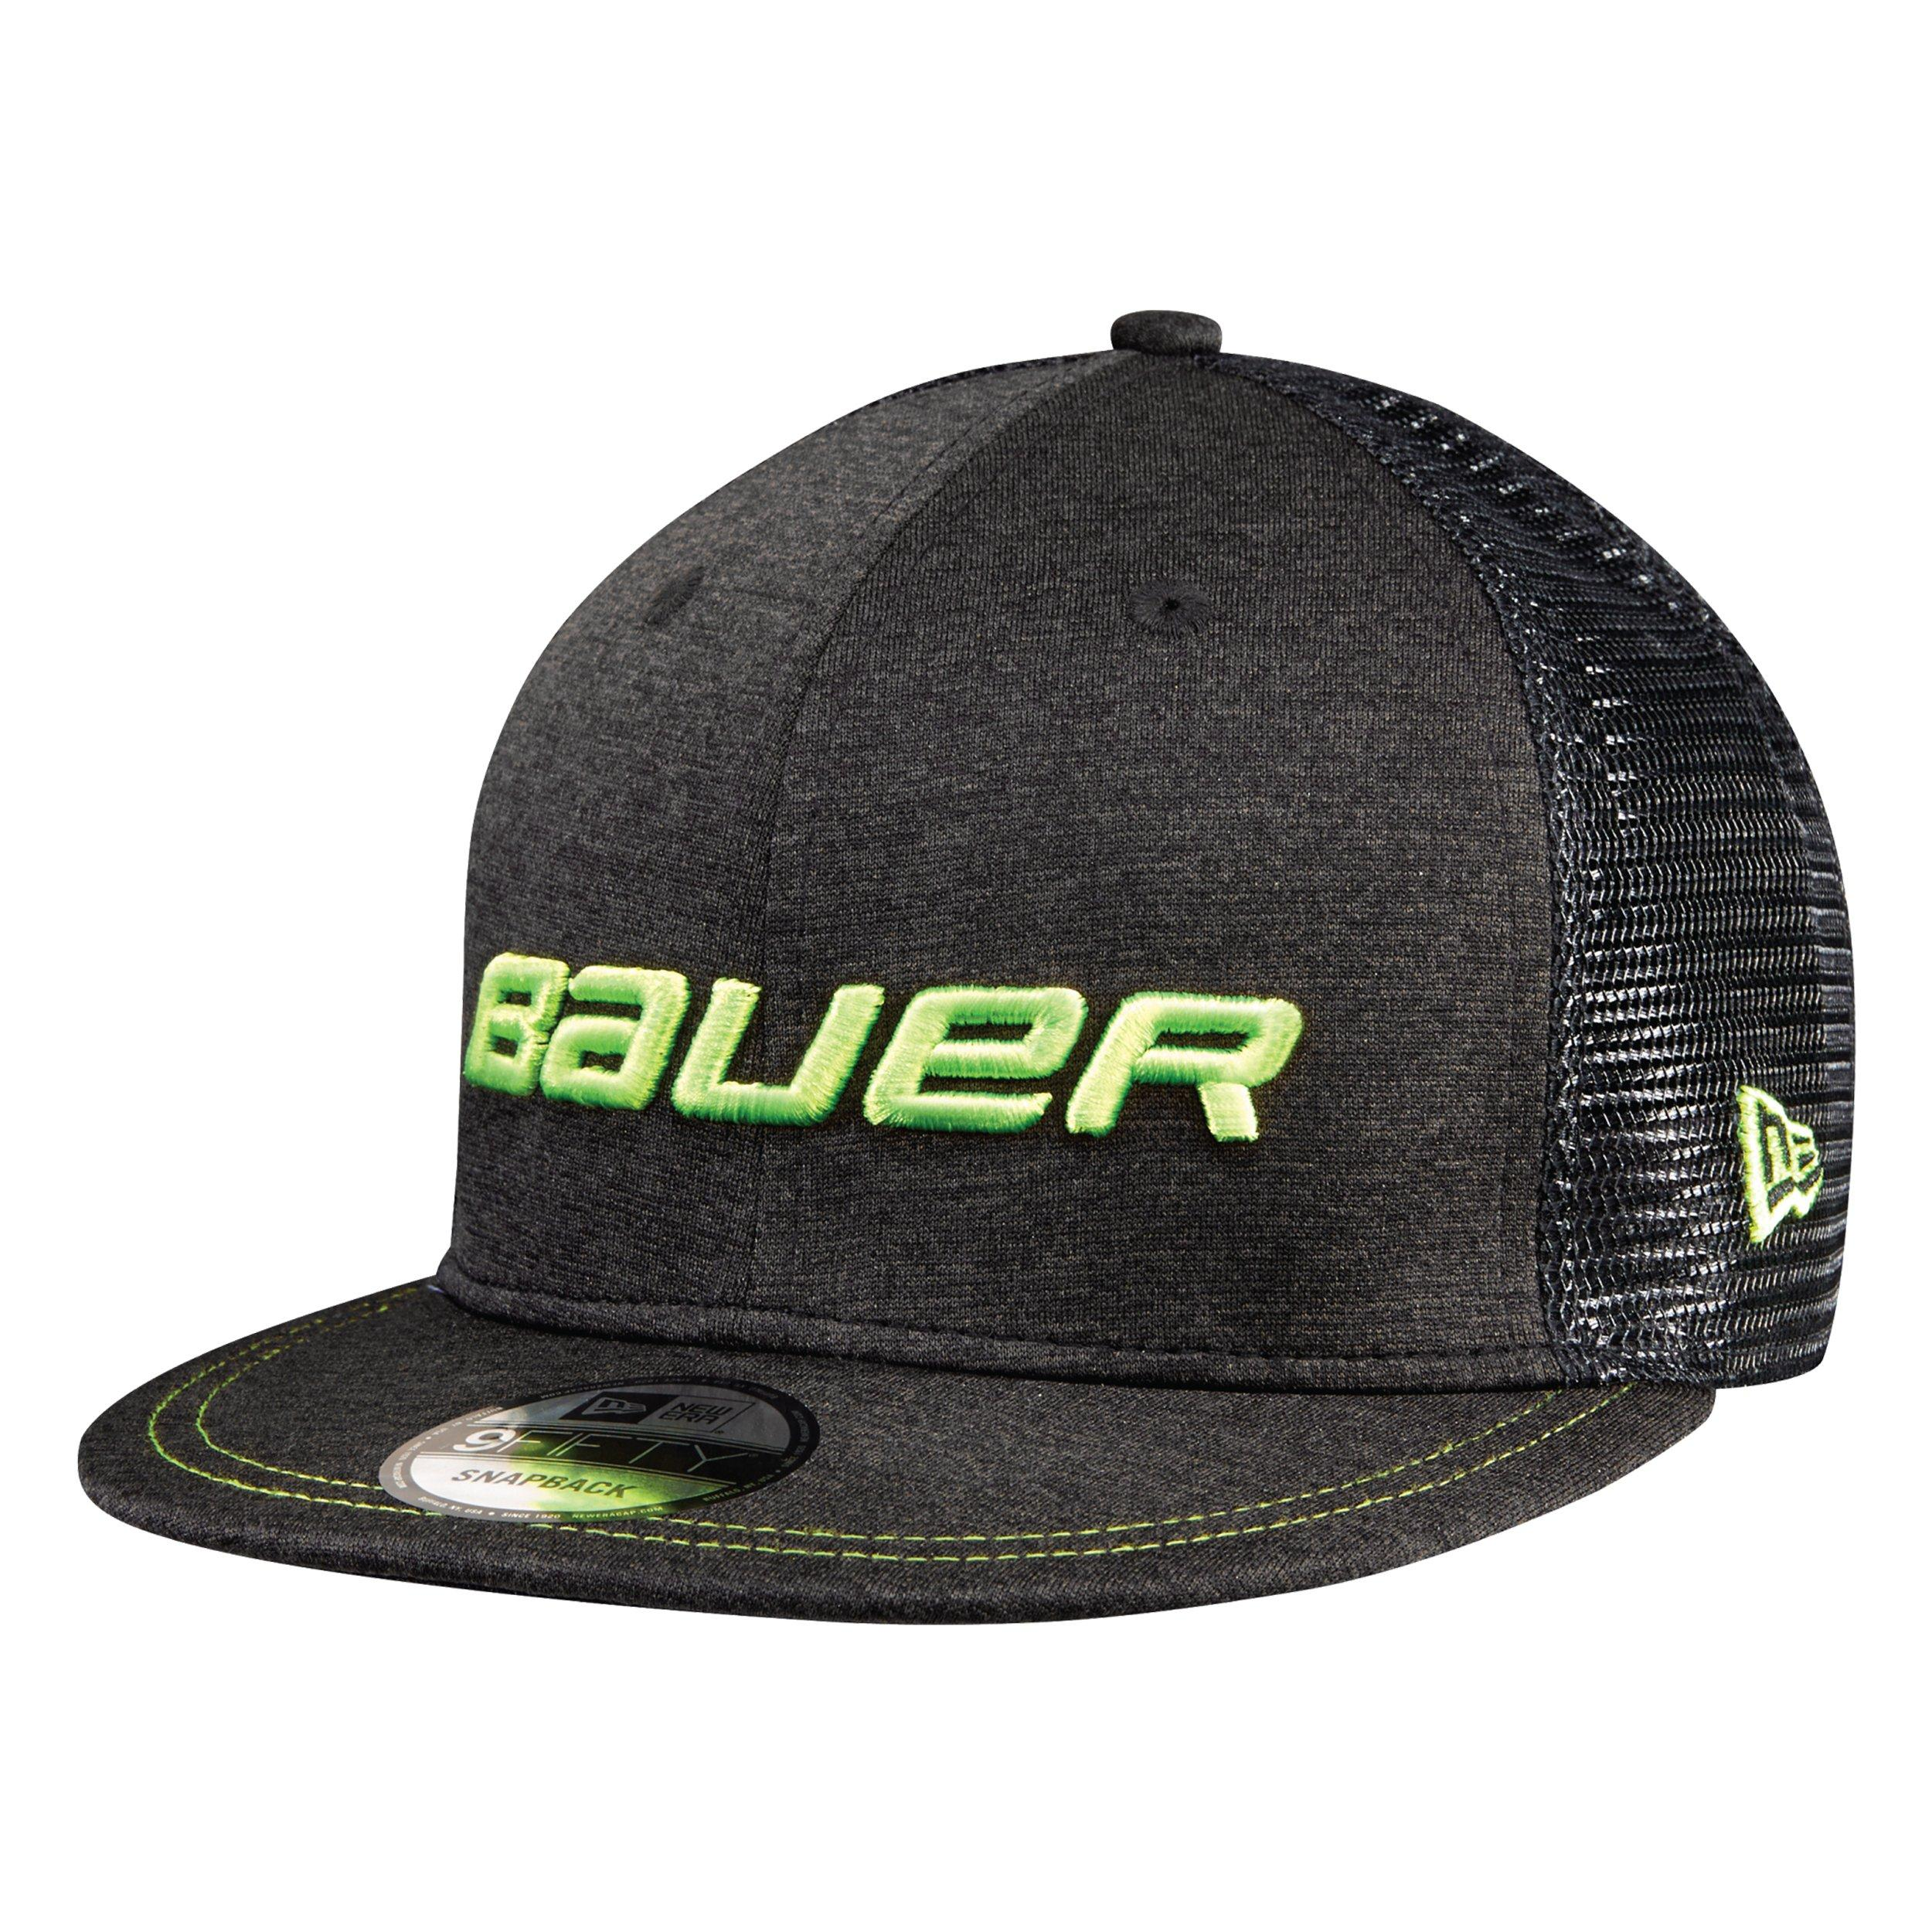 BAUER / New Era® 9FIFTY® Color Pop Adjustable Cap Senior,,Medium